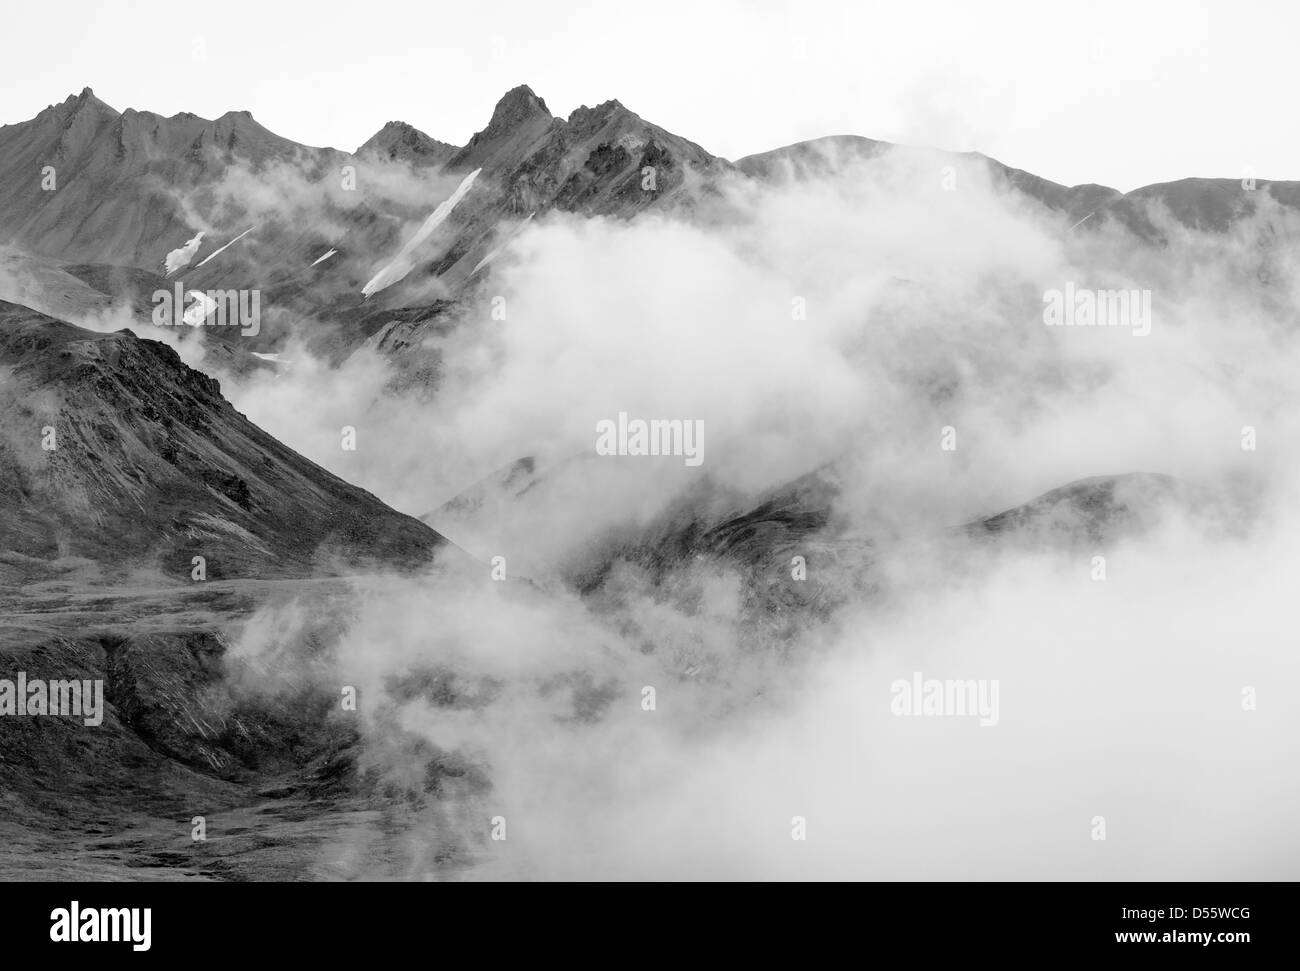 Black and white view of low clouds, mist and fog partially obscure the Alaska Range, Denali National Park, Alaska, Stock Photo